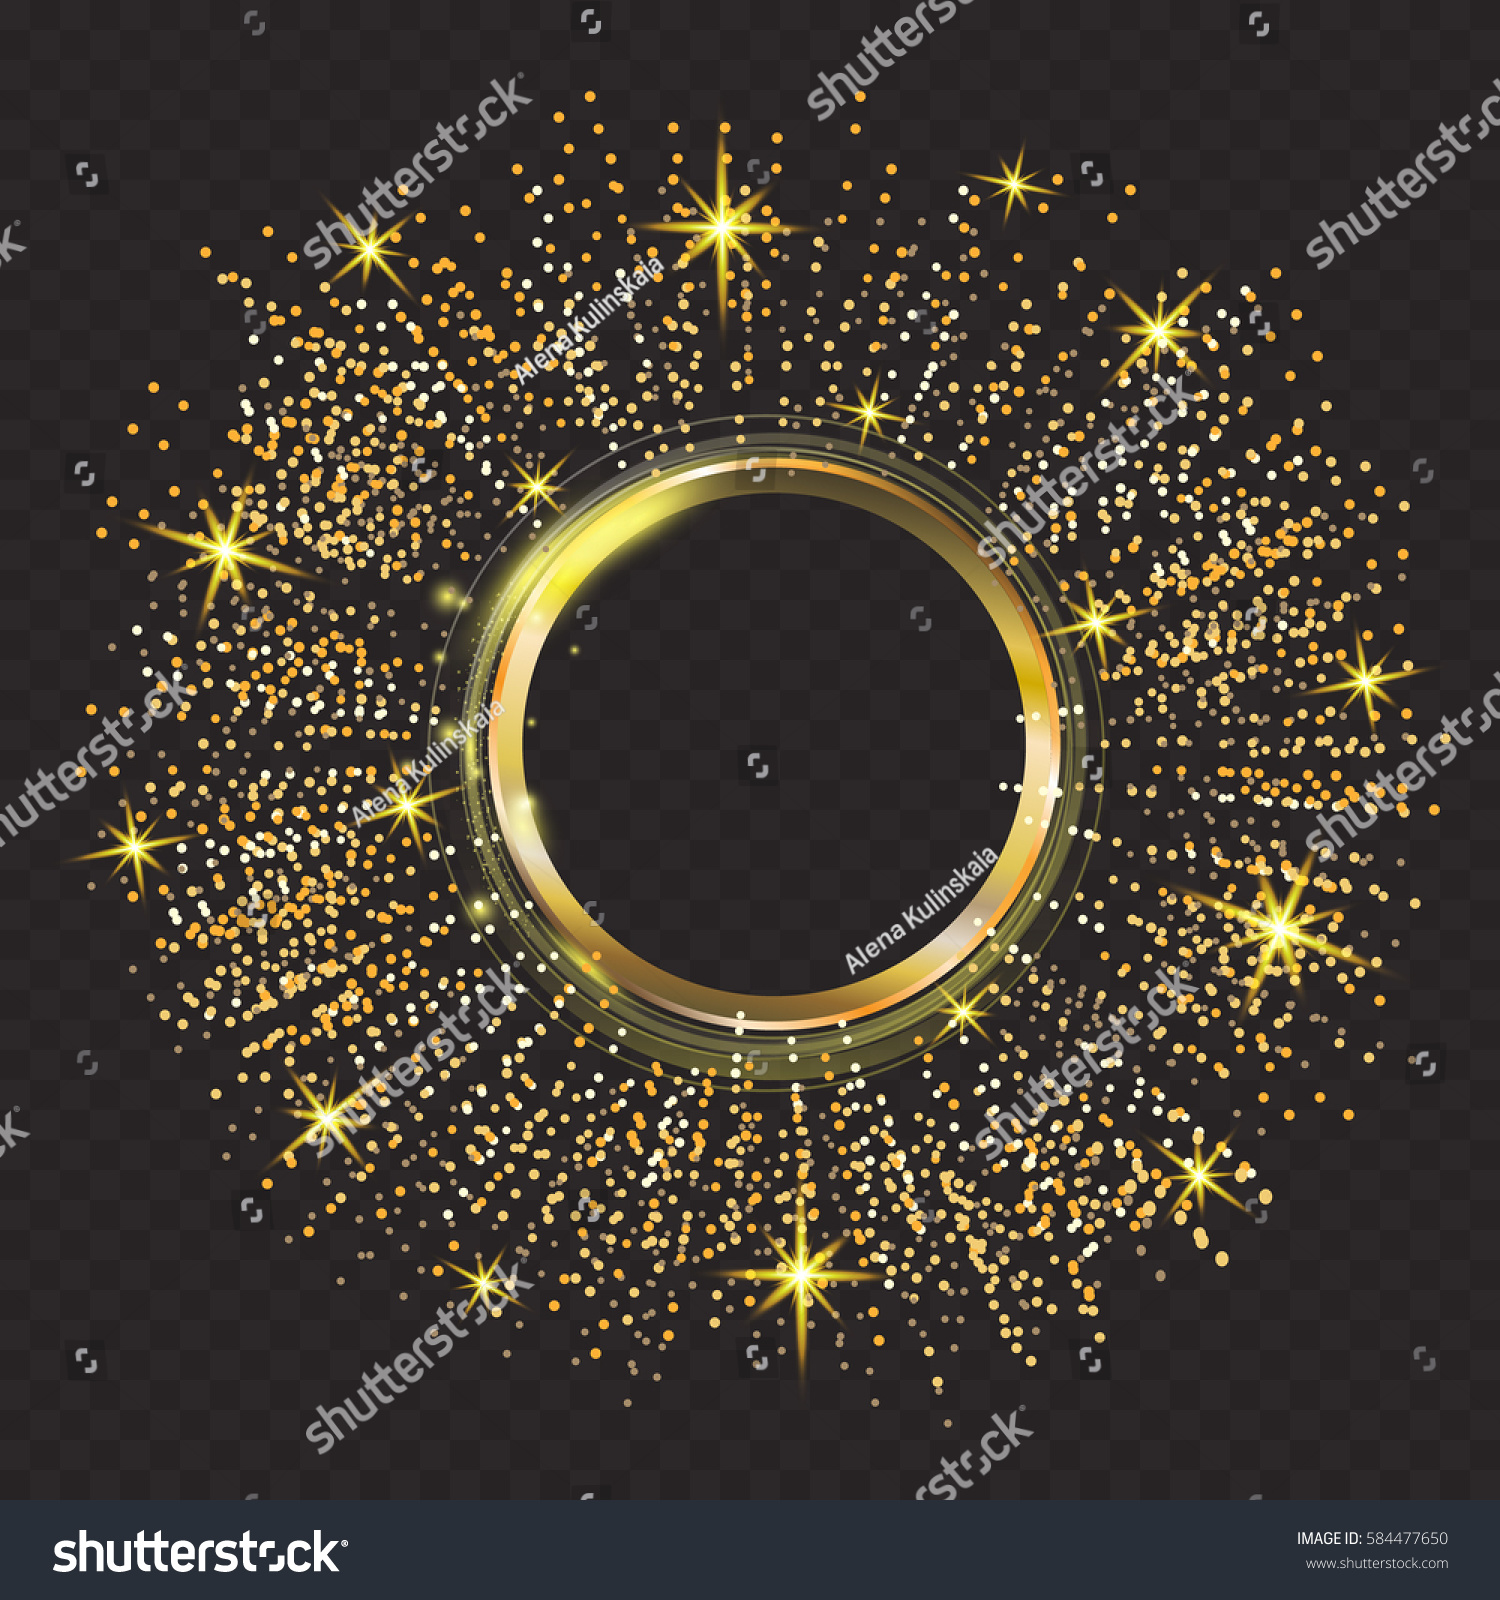 Gold glitter bright vector transparent background golden sparkles - Vector Gold Glitter Particles Background Effect Sparkling Texture Abstract Background Golden Sparkles On